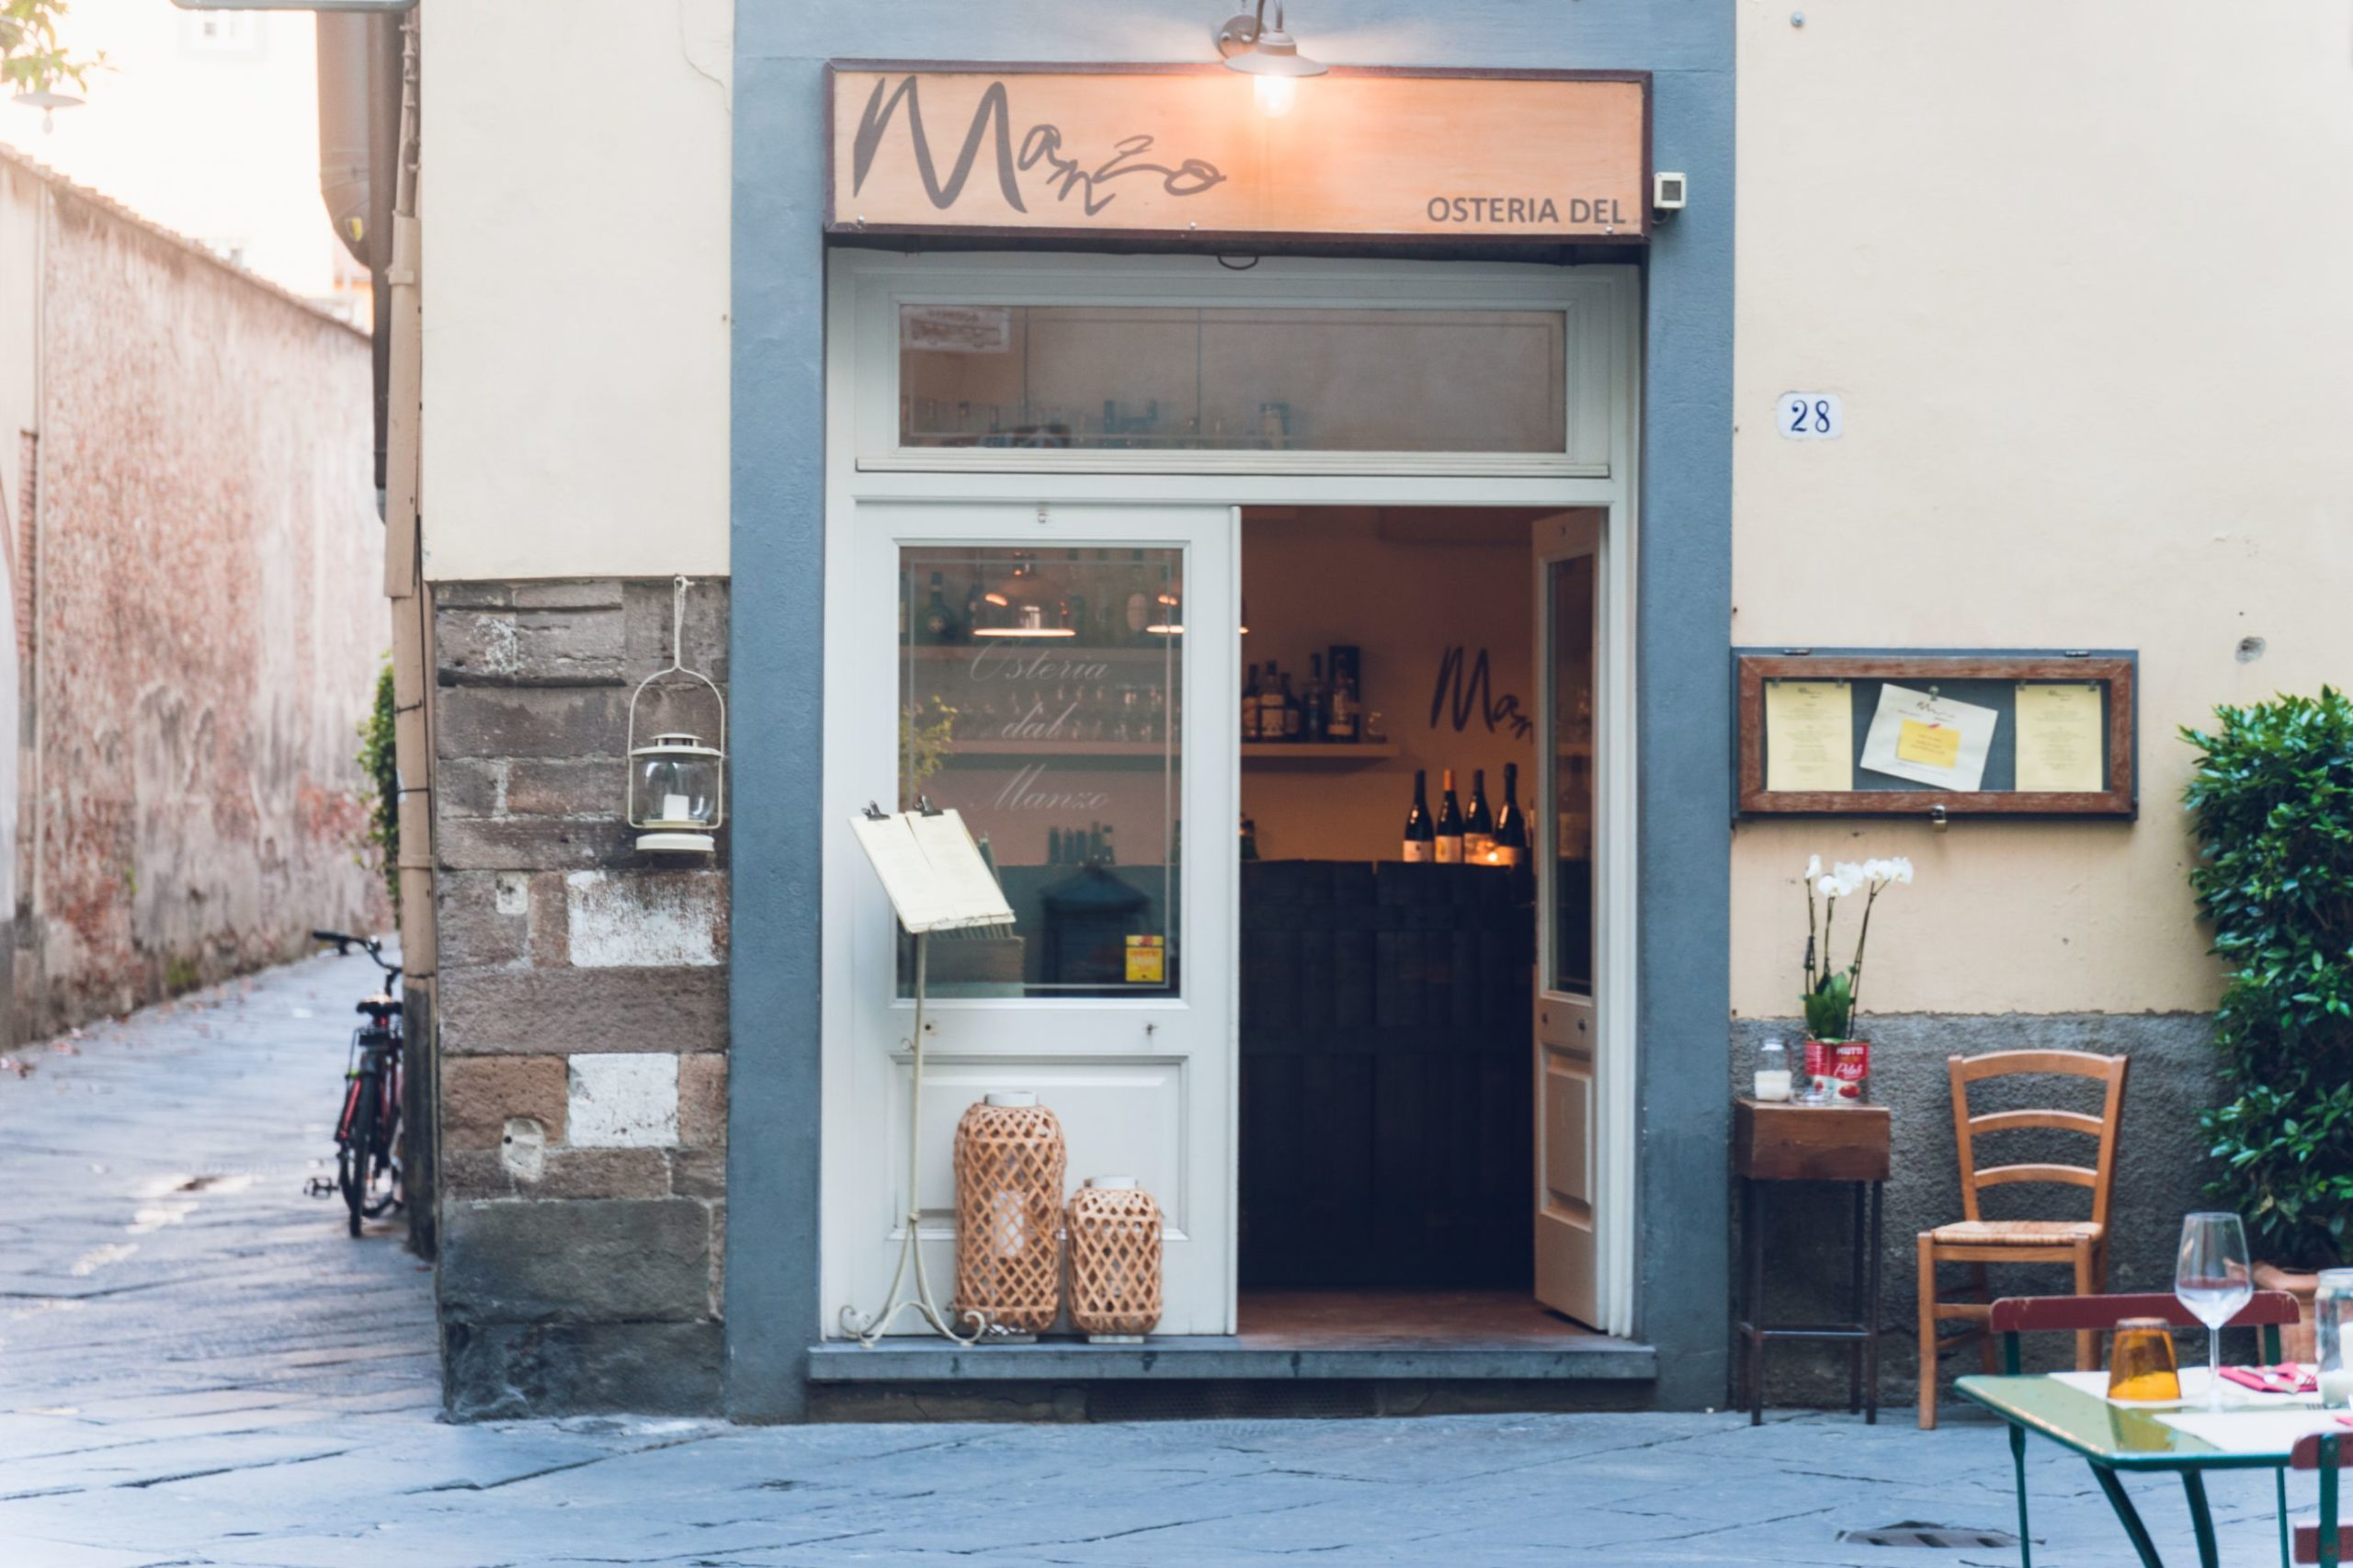 Osteria Dal Manzo from the outside